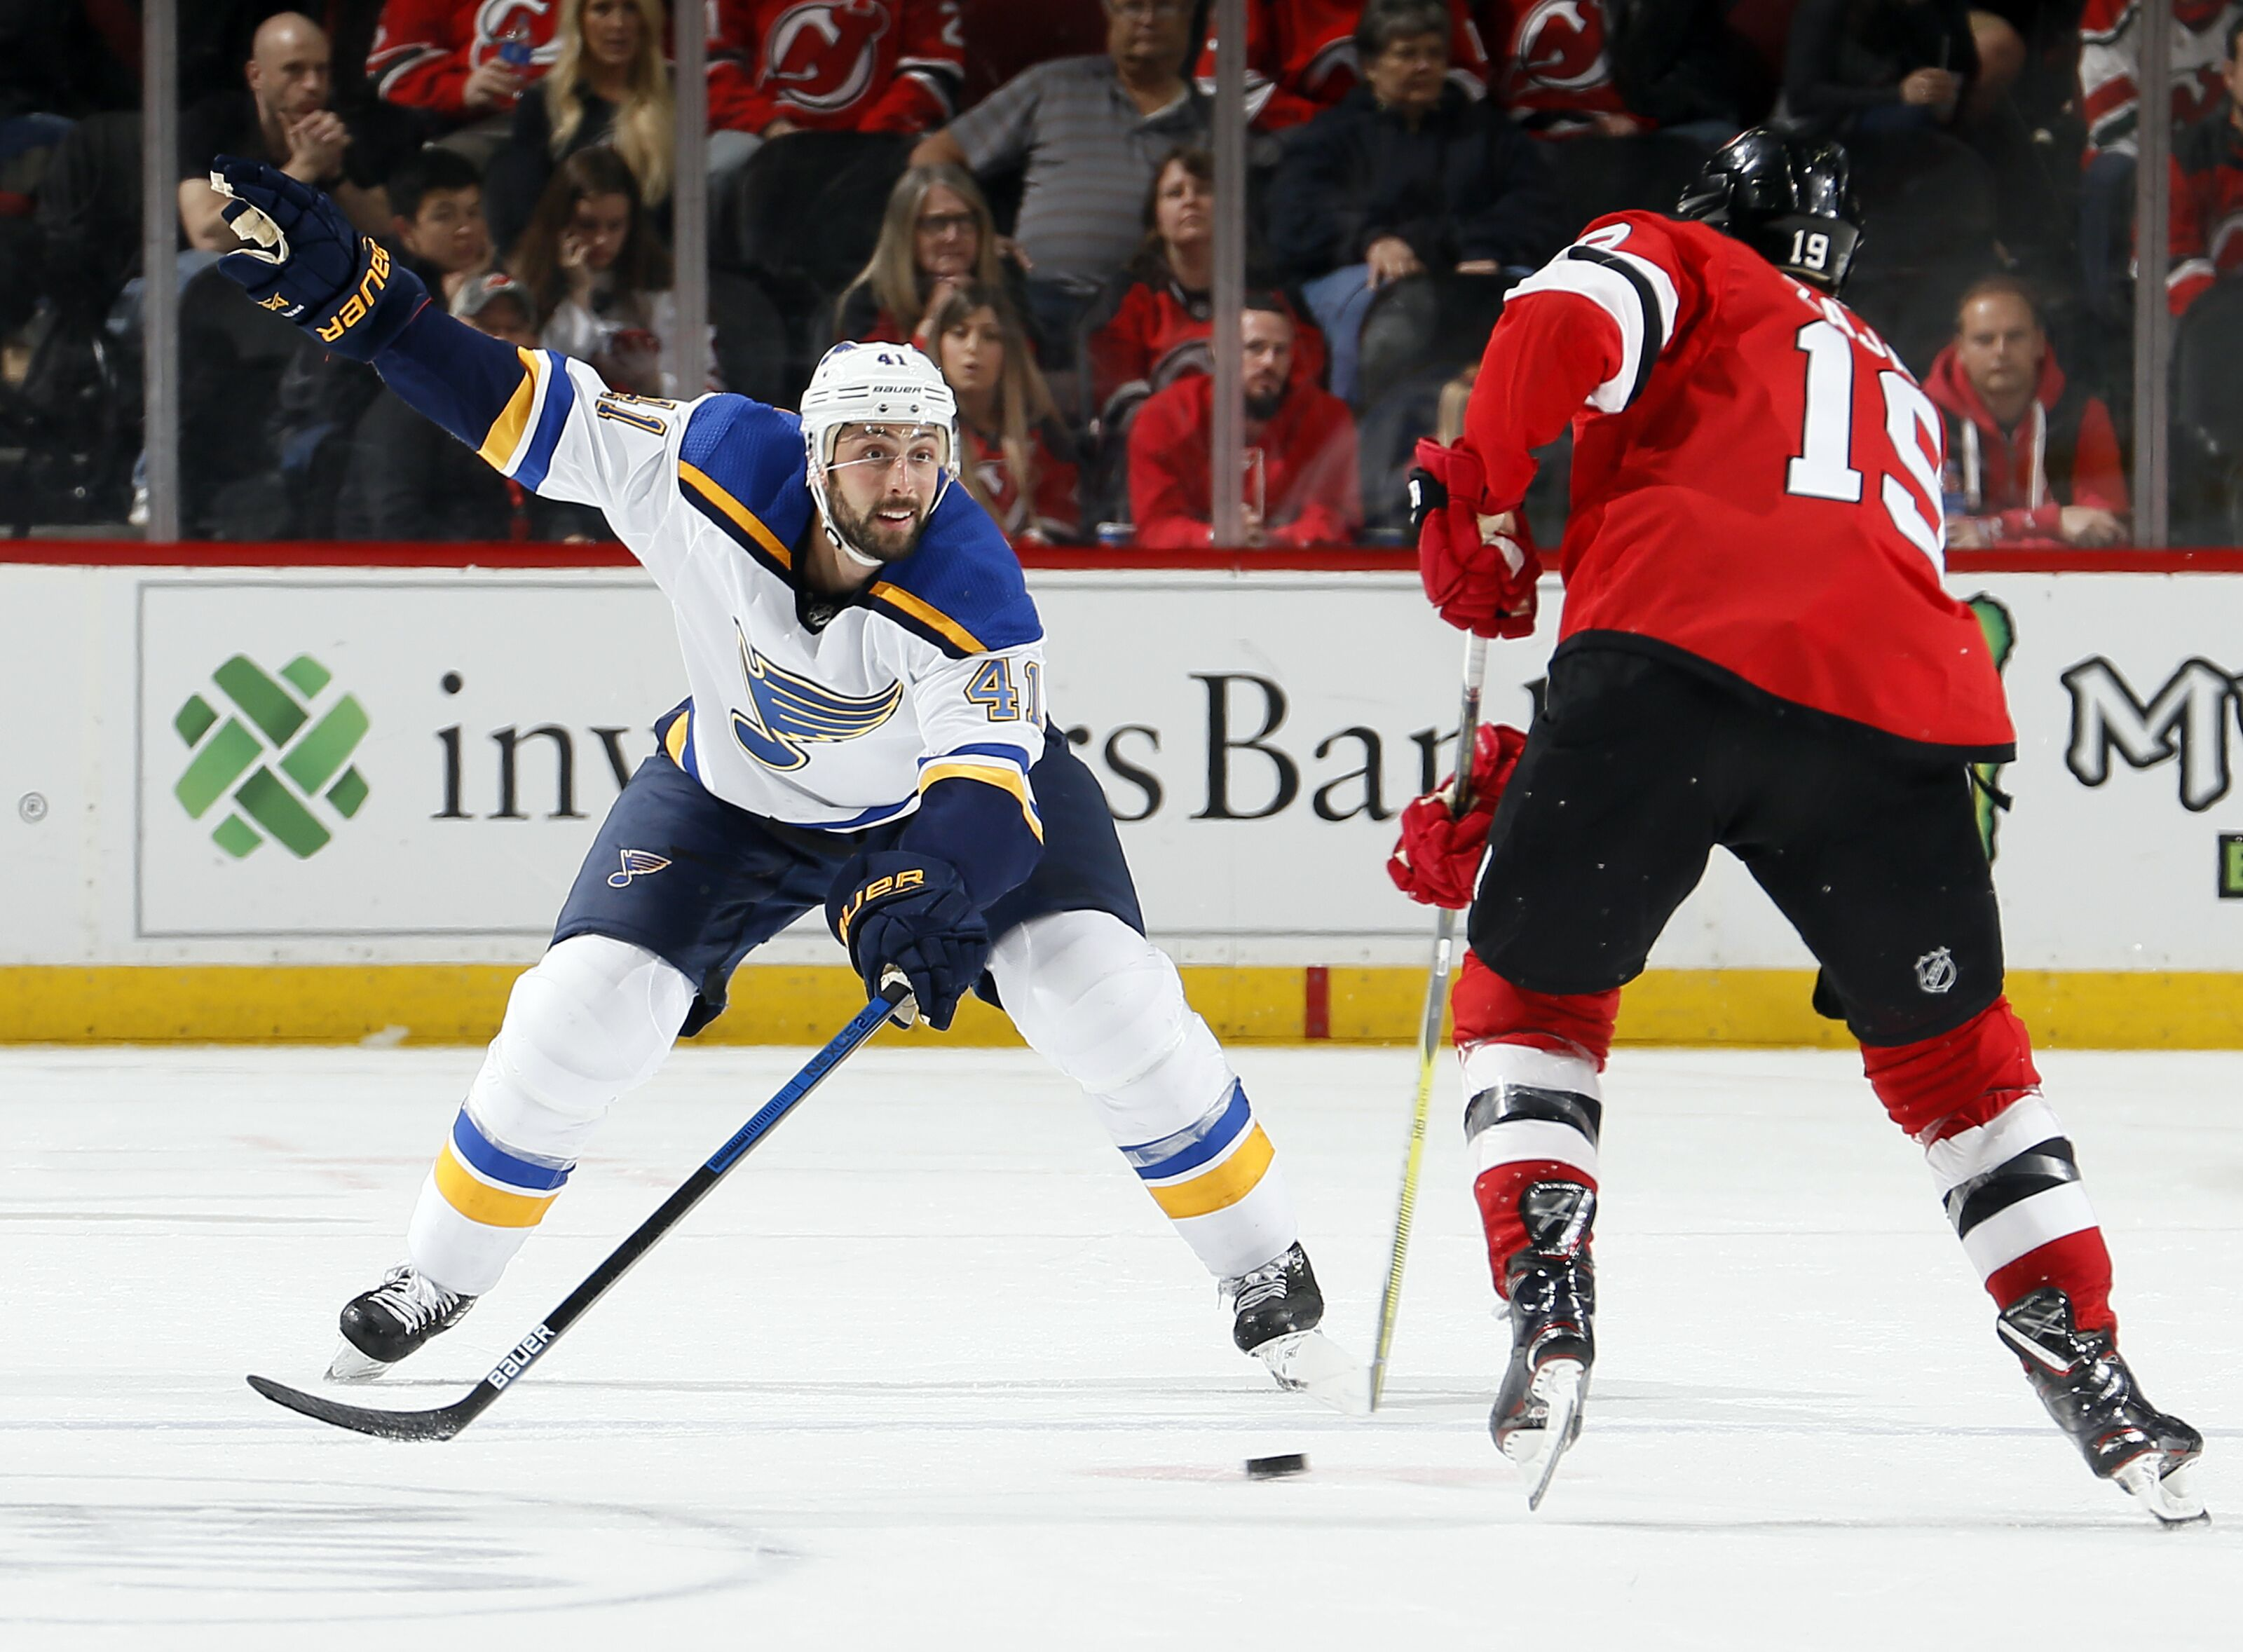 St. Louis Blues Might Make Deal With Devils To End Streak